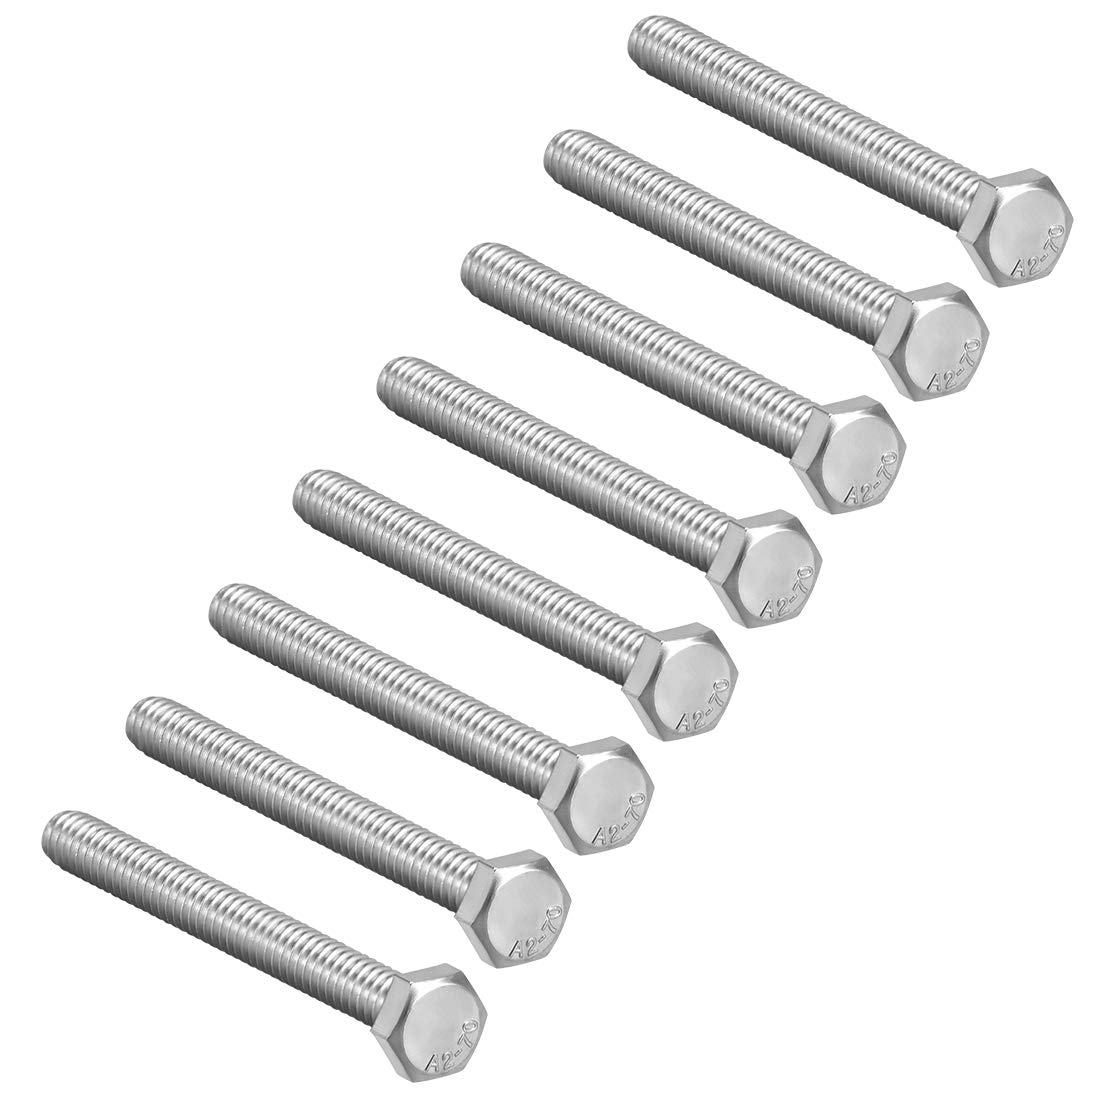 uxcell M8x100mm Hex Bolts 304 Screw Limited Brand new Special Price Stainless Bolt Steel Hexagon